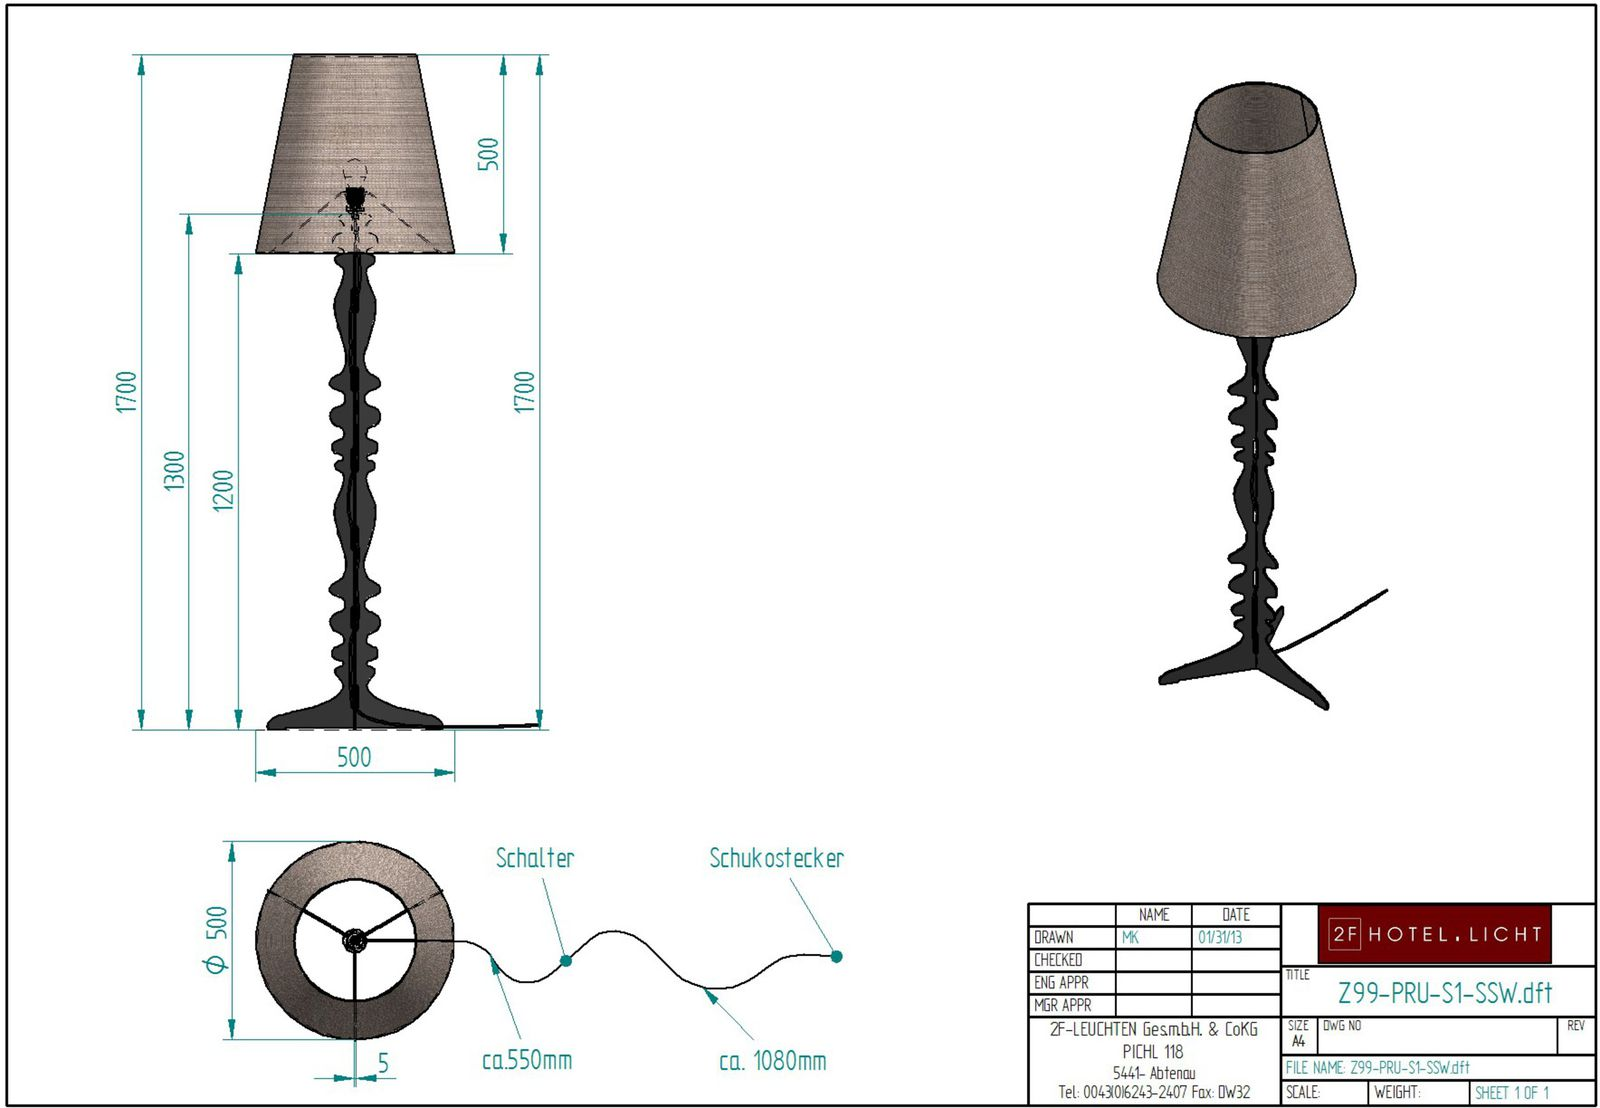 Floor lamp Pure Rustica 1 flg., measure: height complete=1700mm, shade height=500mm, diameter at the top=310mm, surface: bronzed soft black, techn. details: 1xE27, 28W/230V